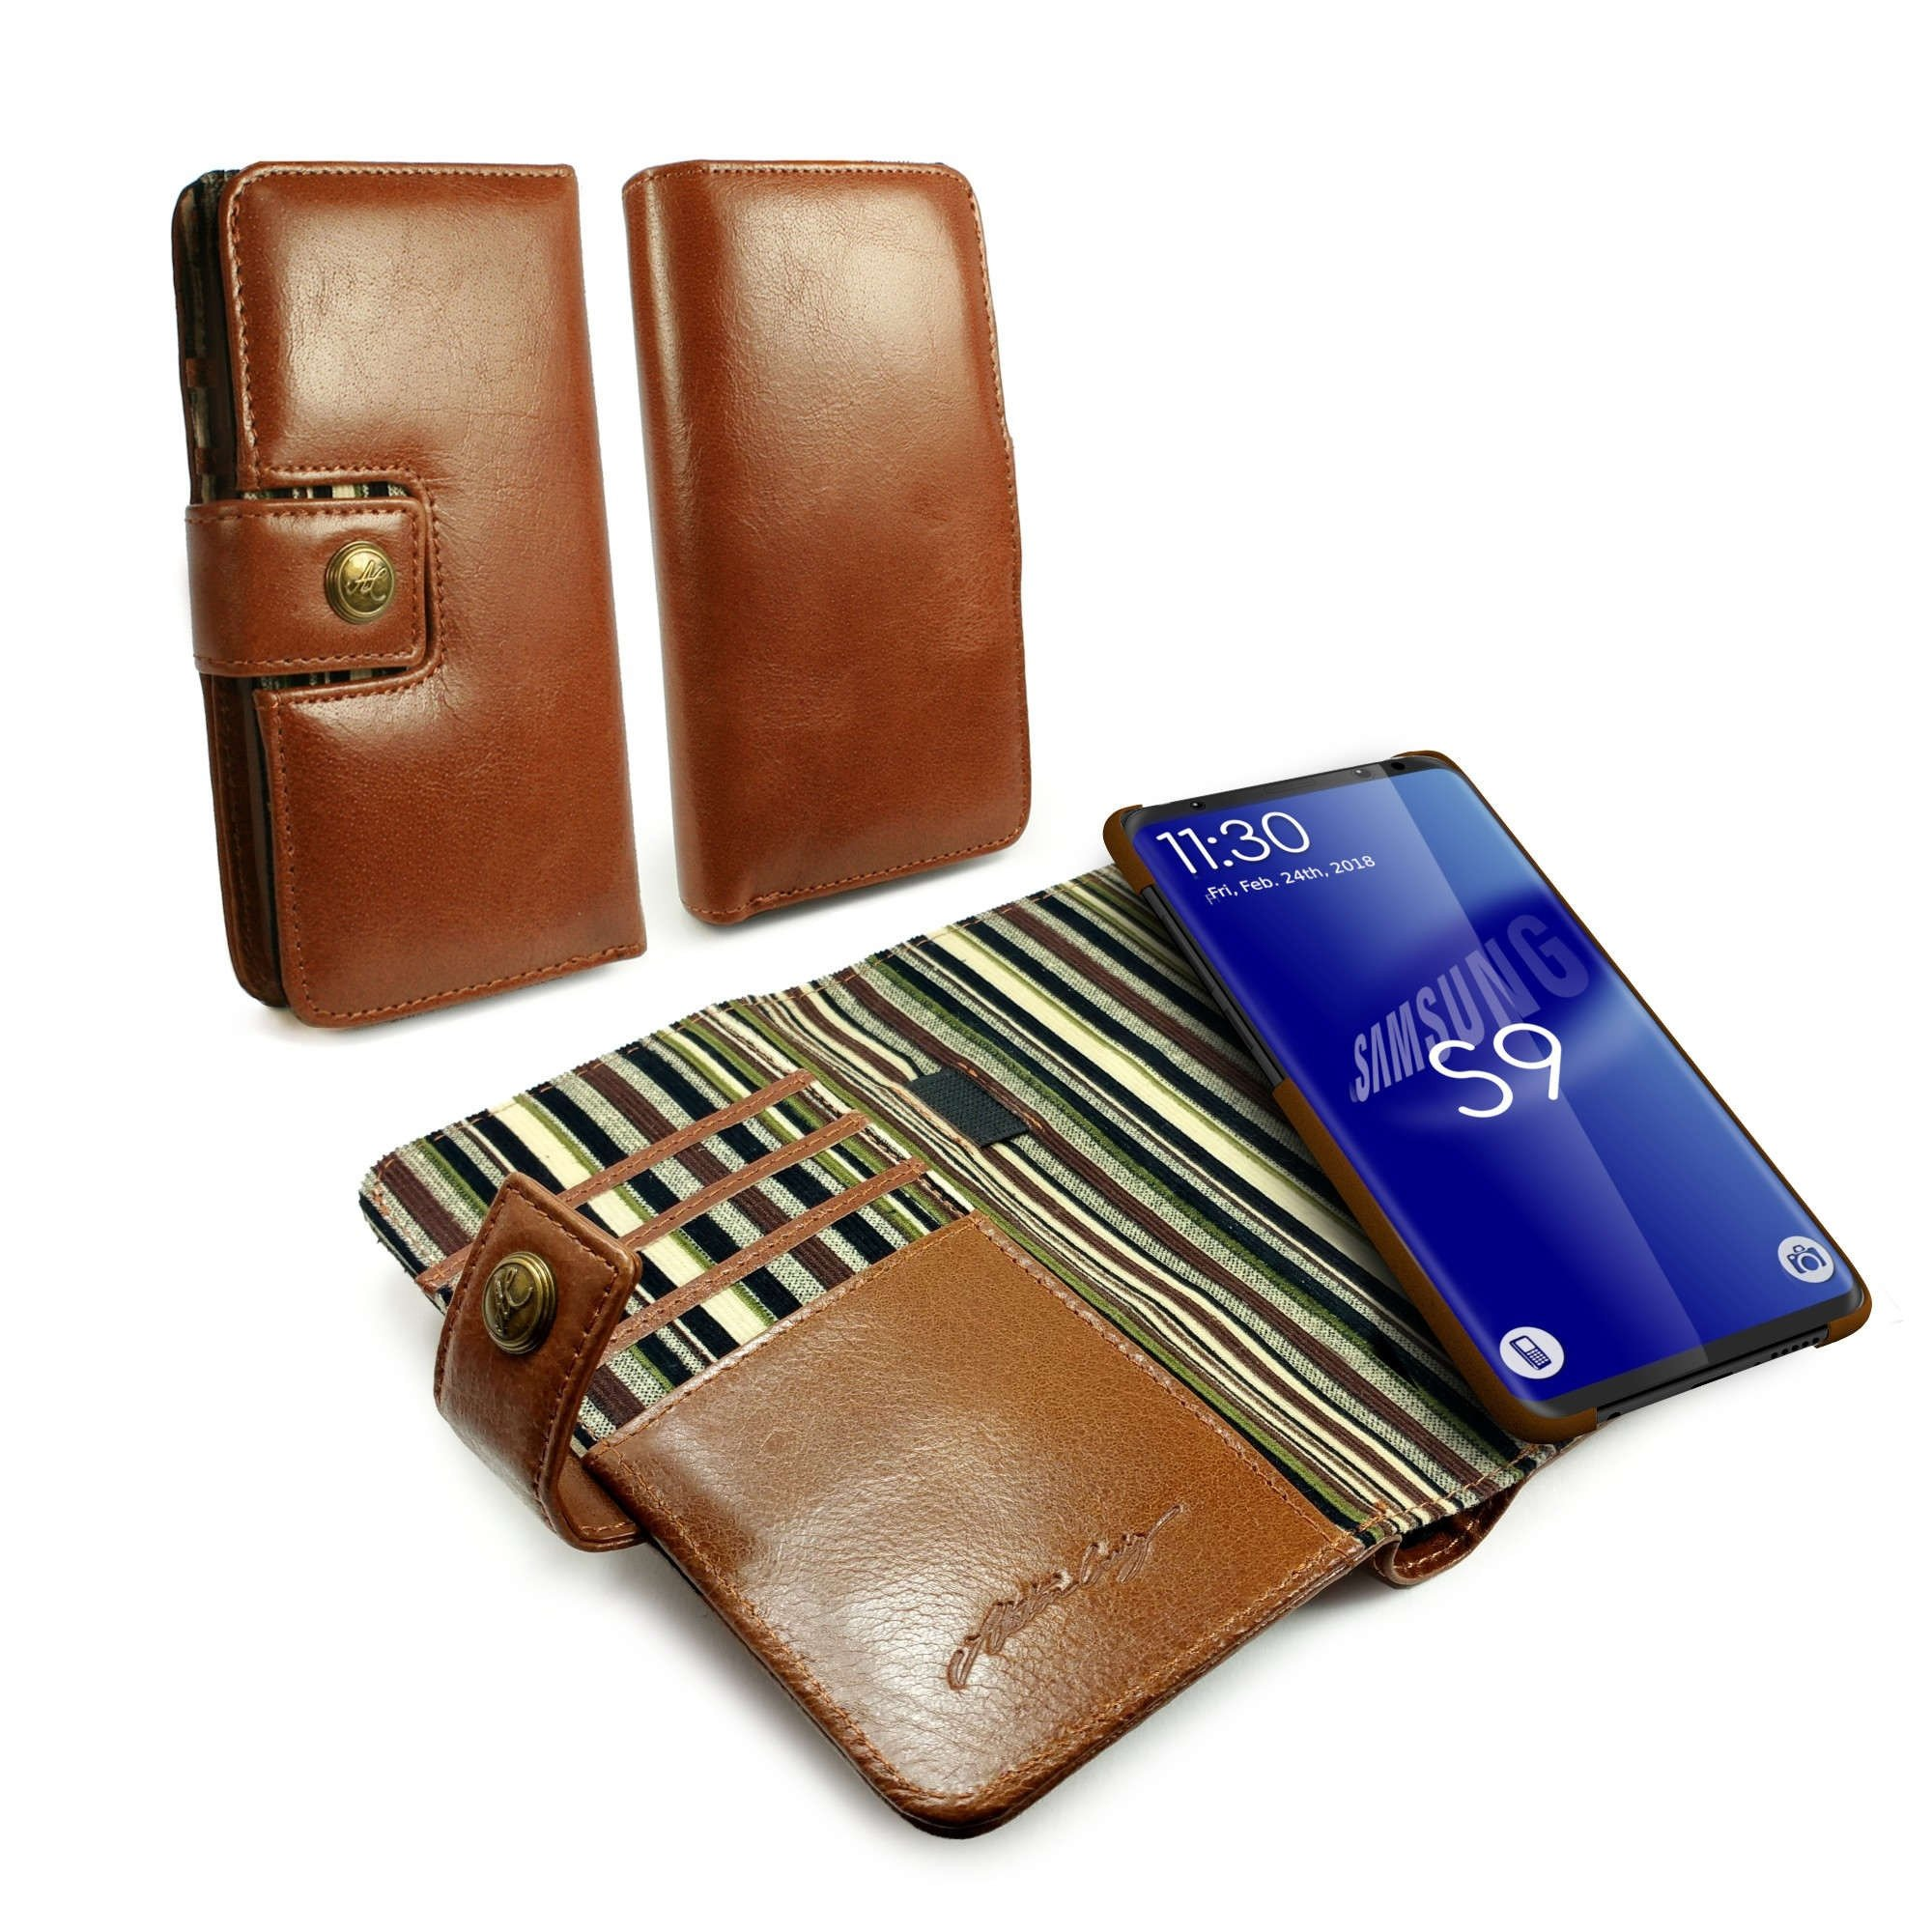 Alston Craig J9_37 Gentlemen's Traditional Vintage Genuine Leather [with RFID Blocking] Magnetic Shell Folio Wallet Case Cover No Bill fold for Galaxy S9 Plus - Brown